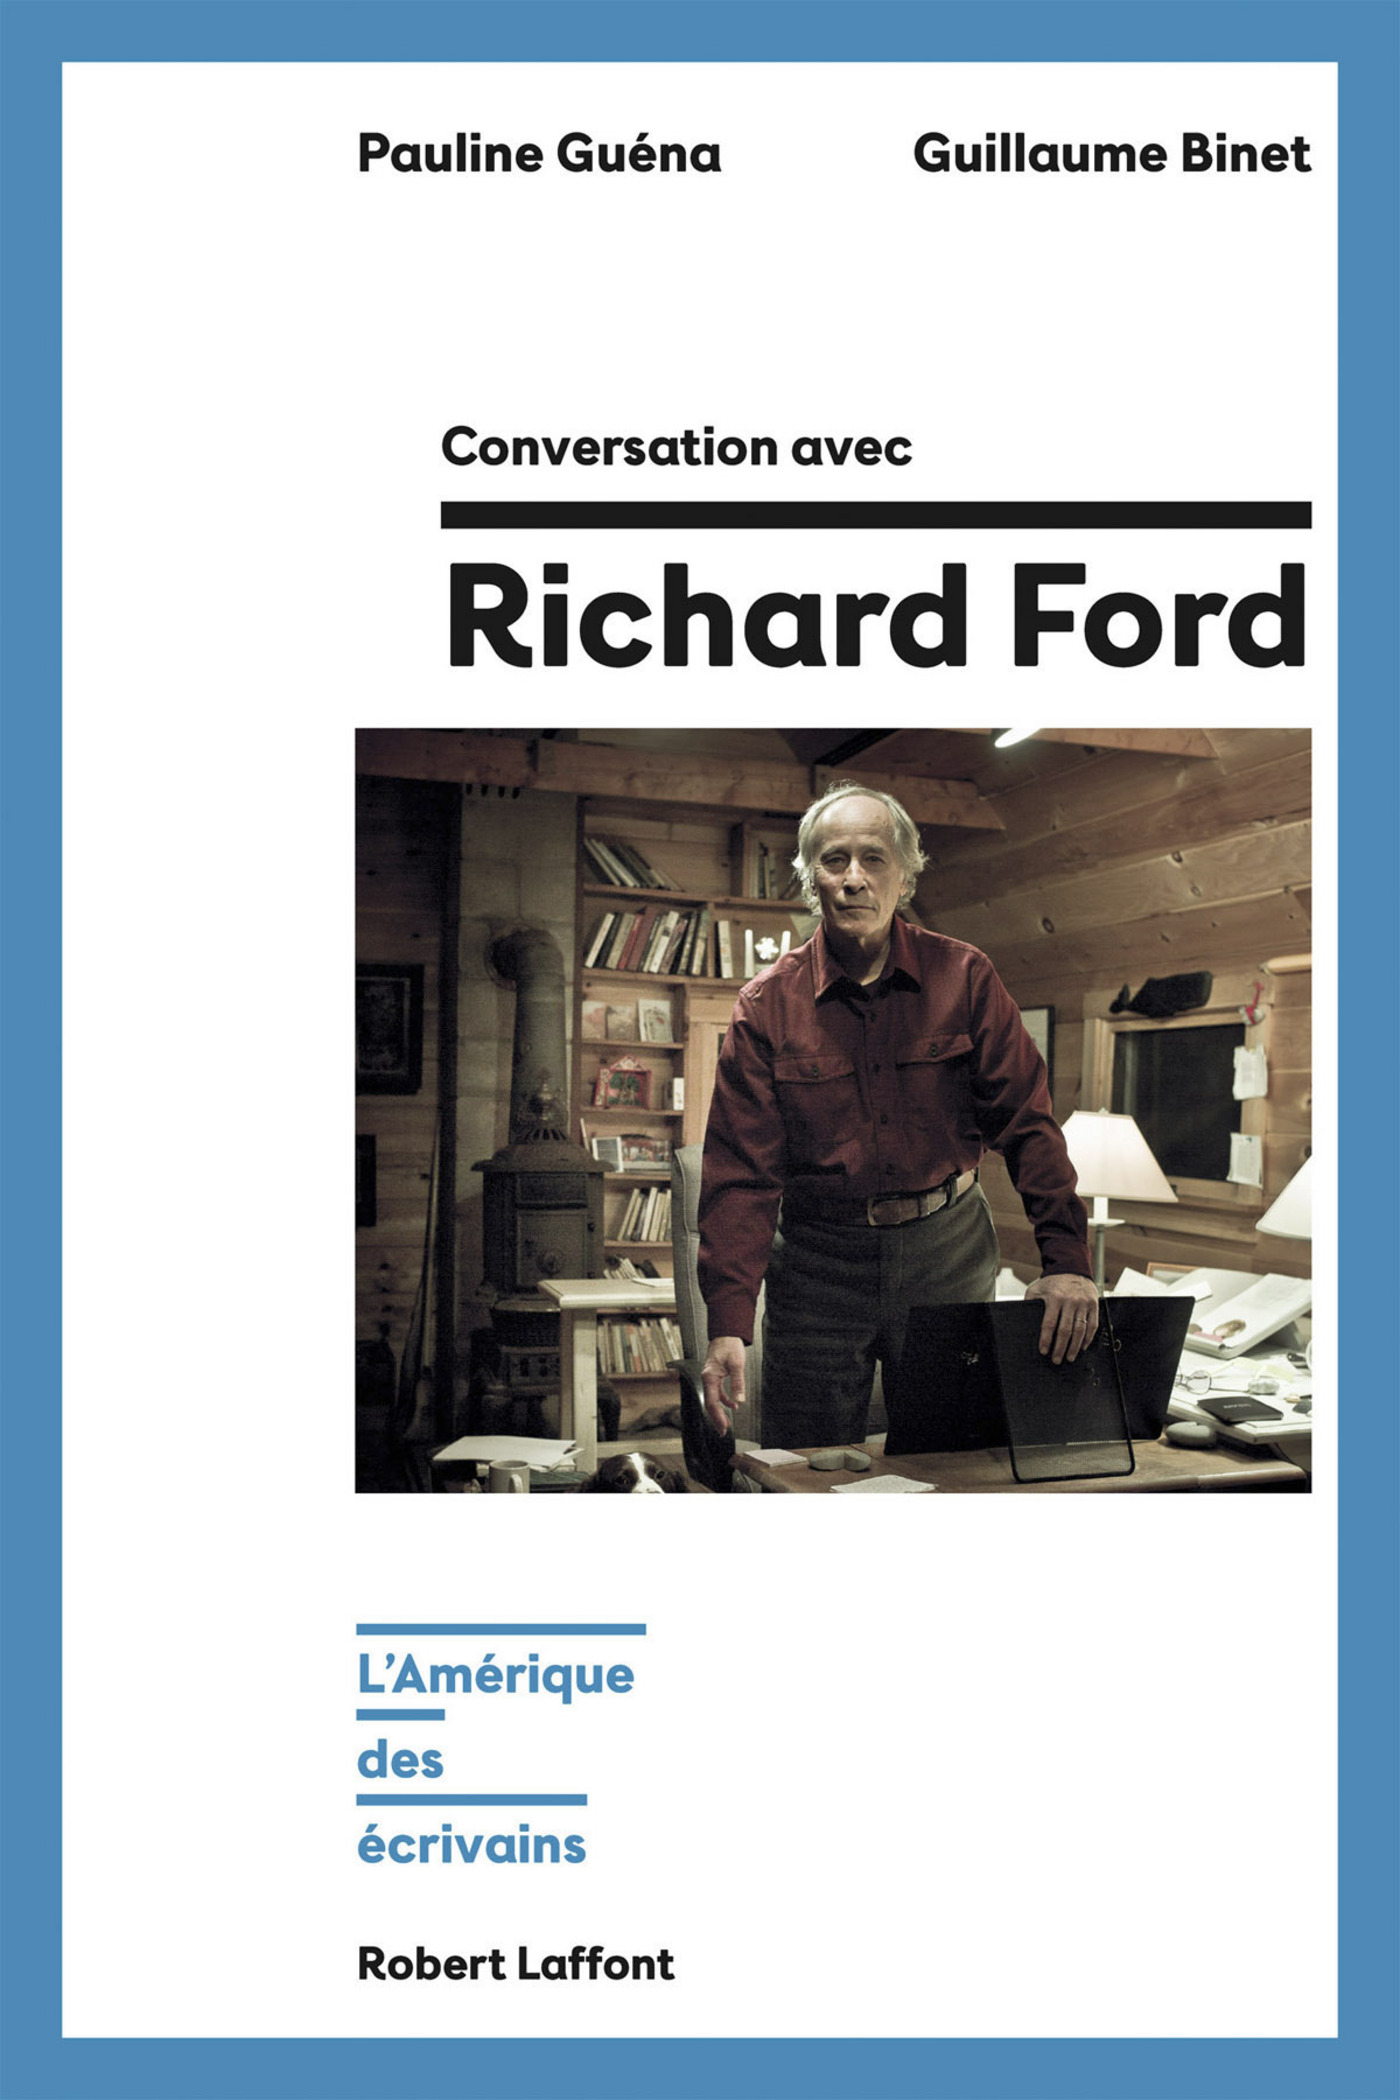 Conversation avec Richard Ford